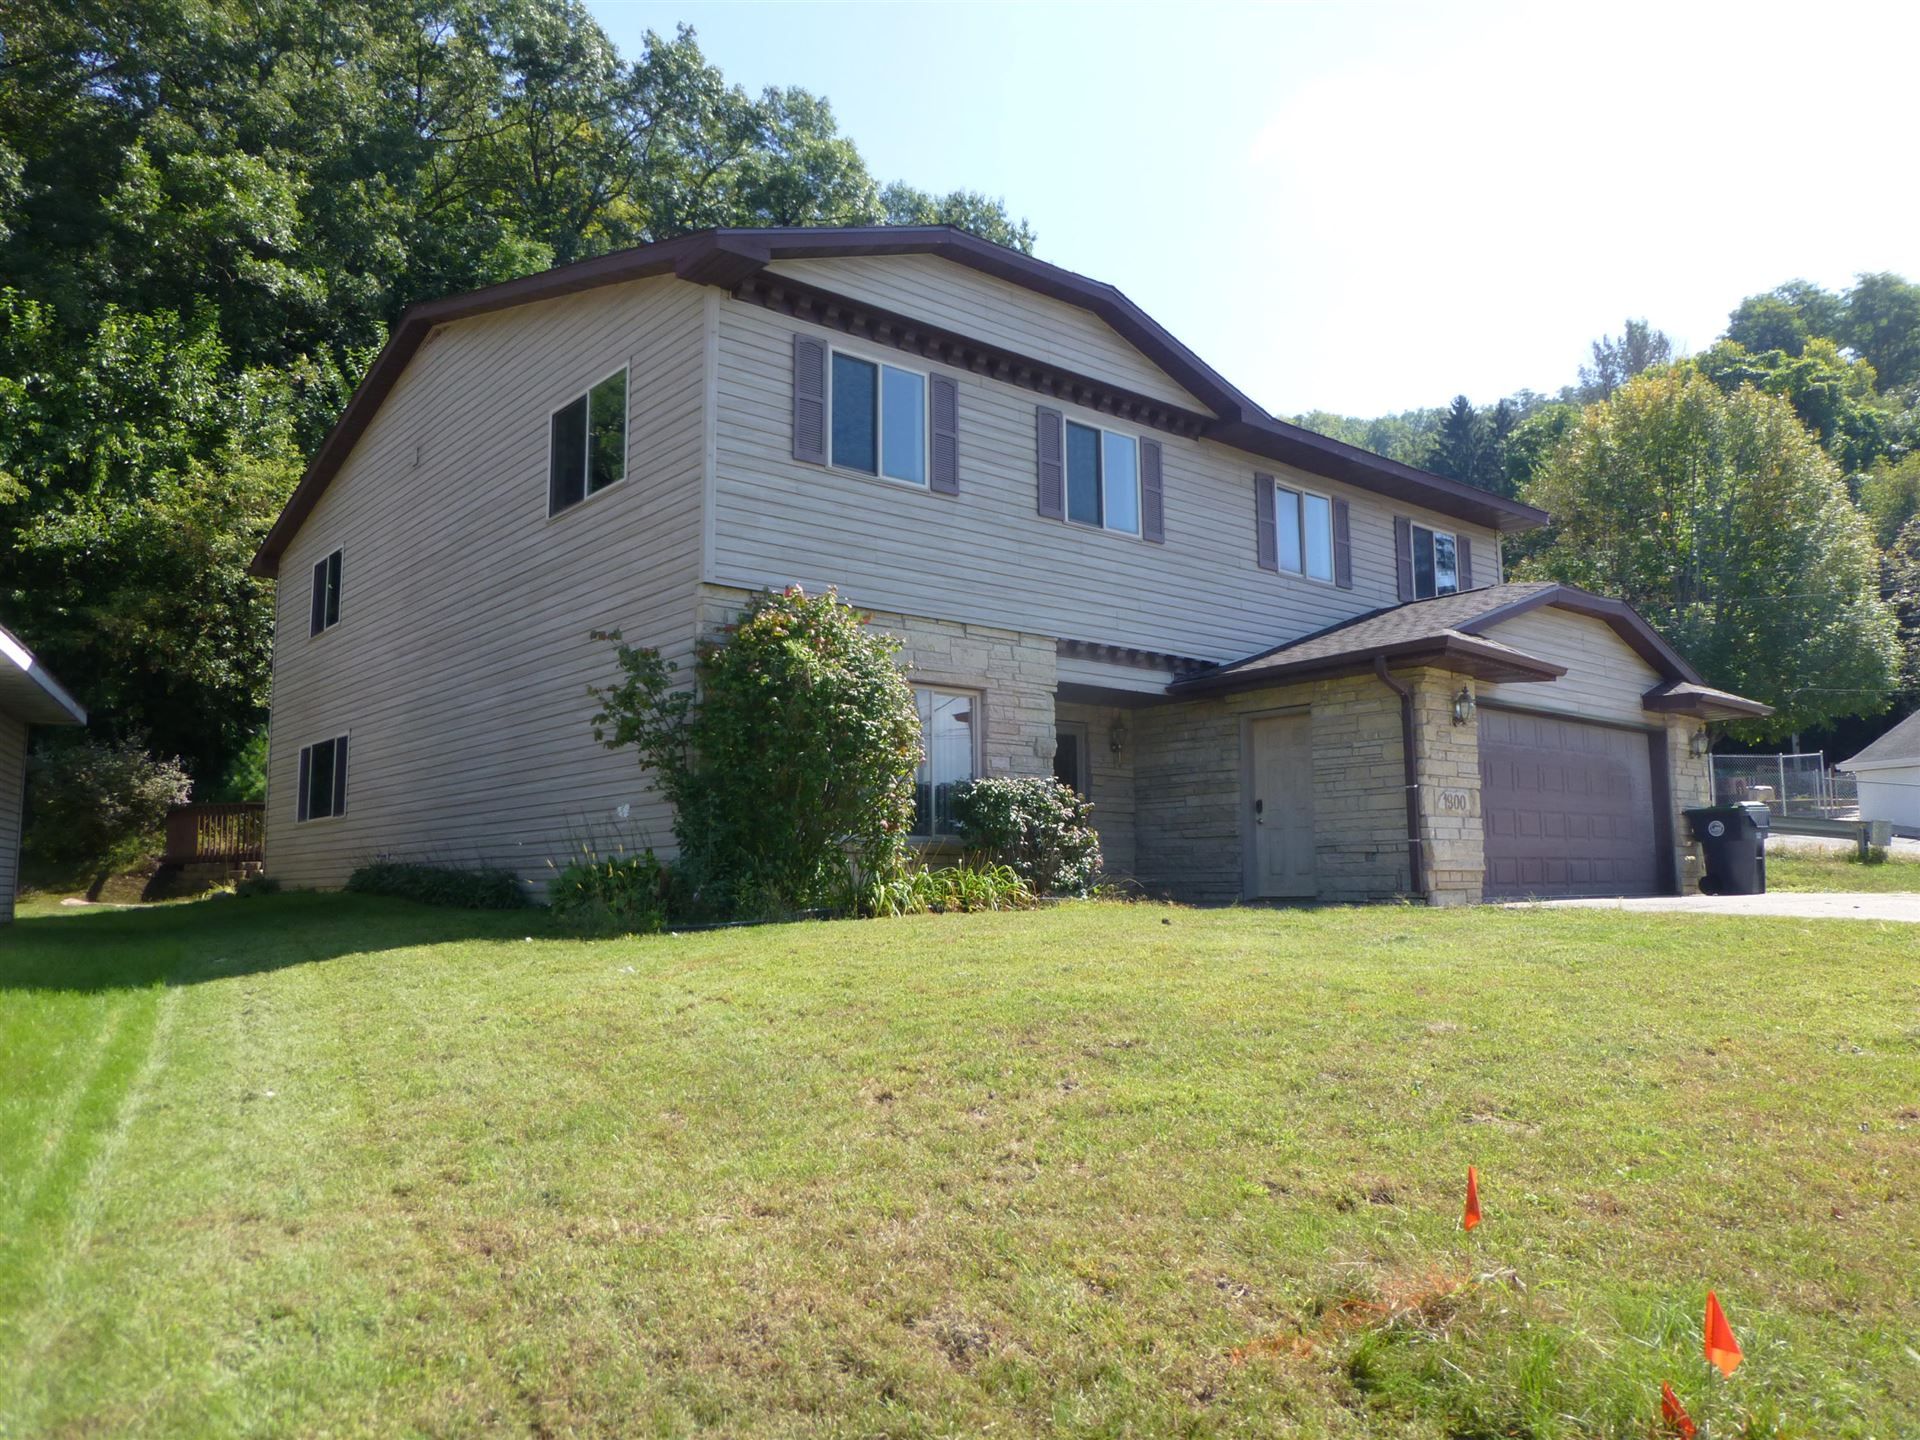 1900 Sunset Ln, La Crosse, WI 54601 - MLS#: 1728575